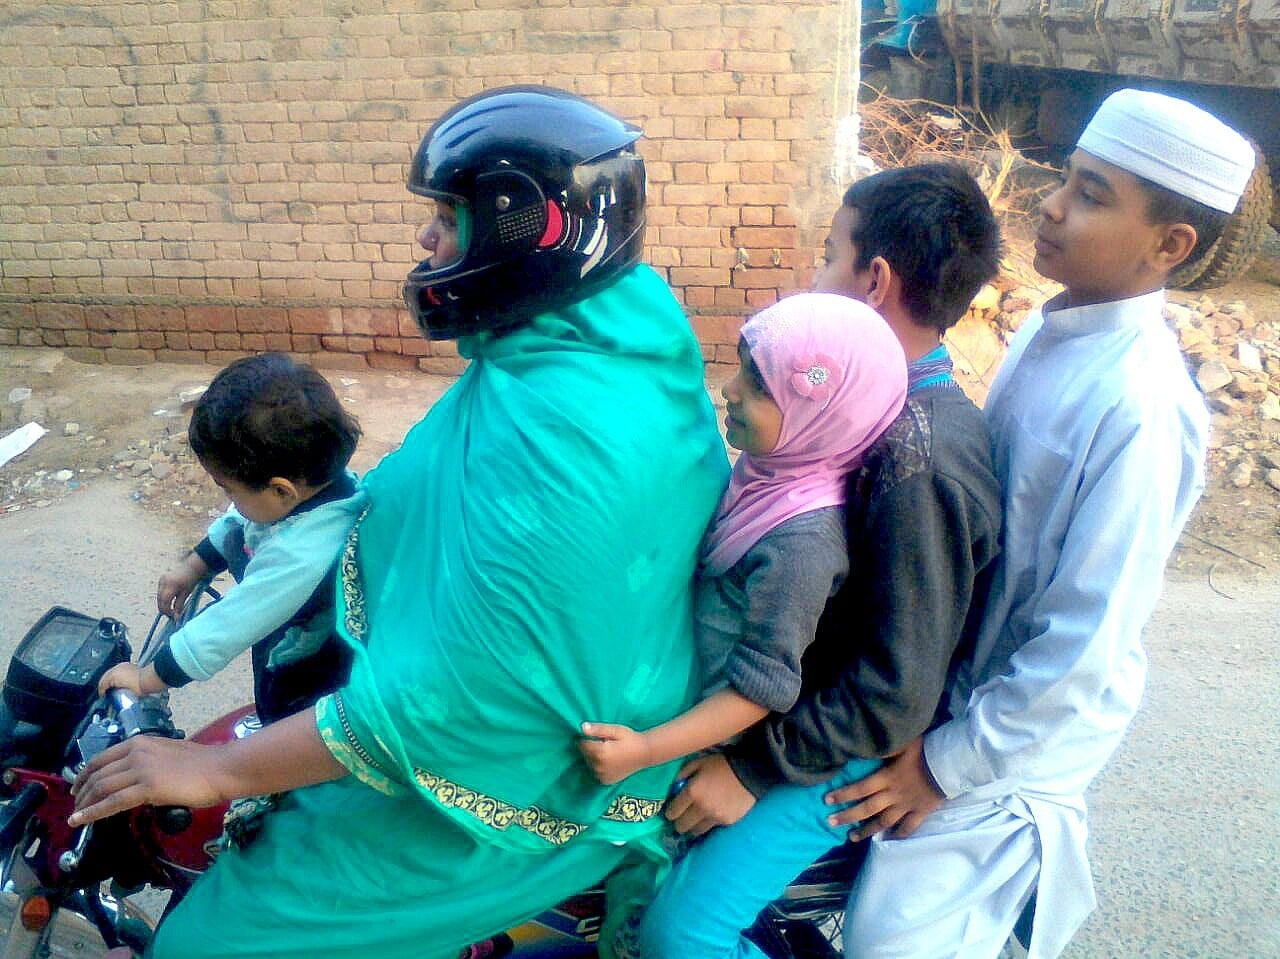 Ayesha Naeem enjoys the independence that comes with owning and riding a motorcycle